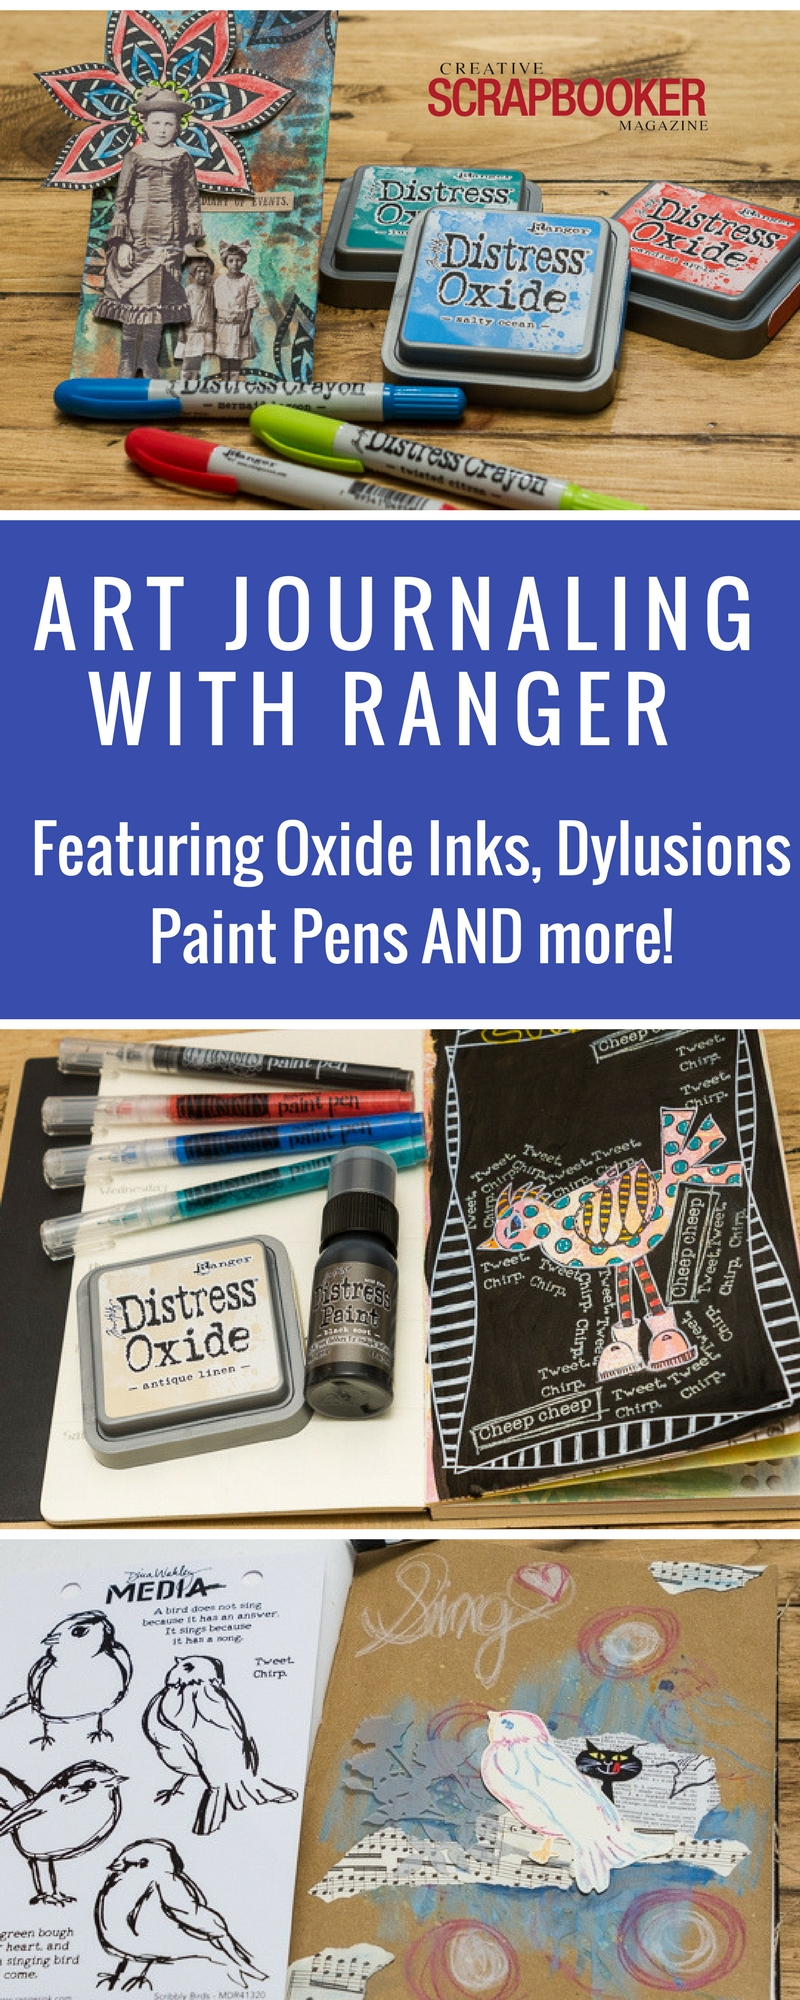 Art Journaling with Ranger Products.